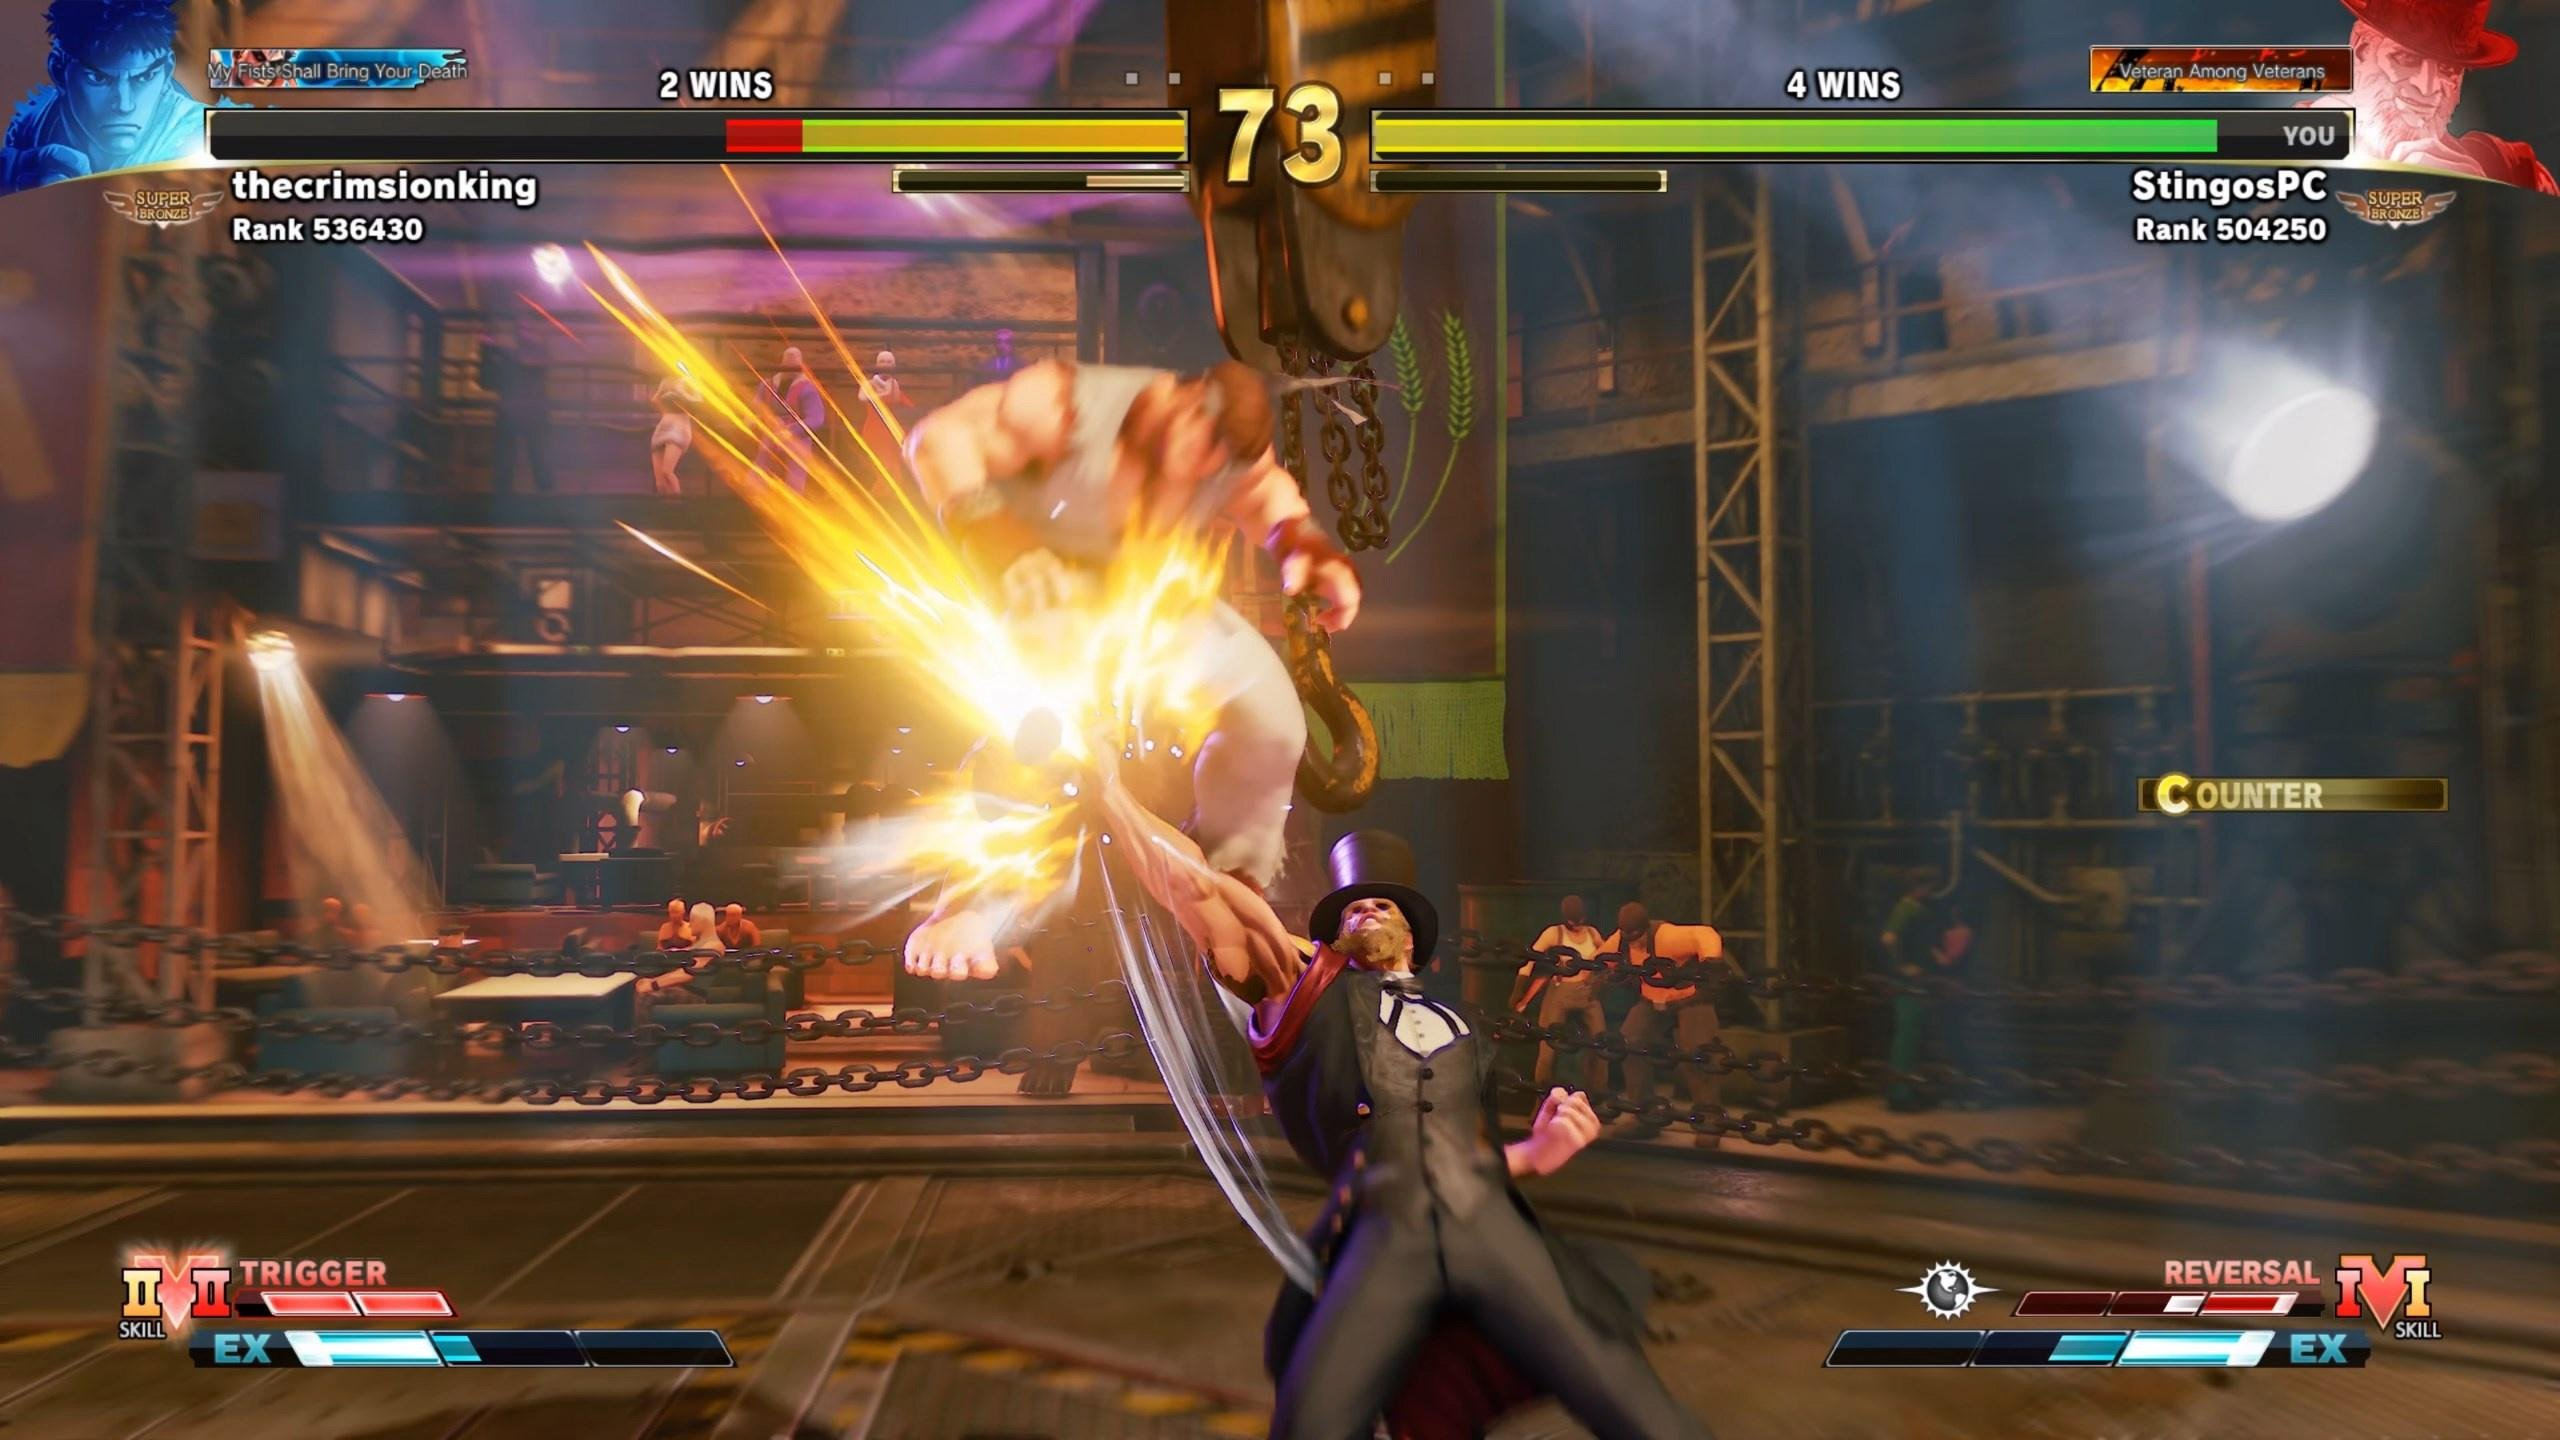 A ranked match in Street Fighter V with Ryu against G.